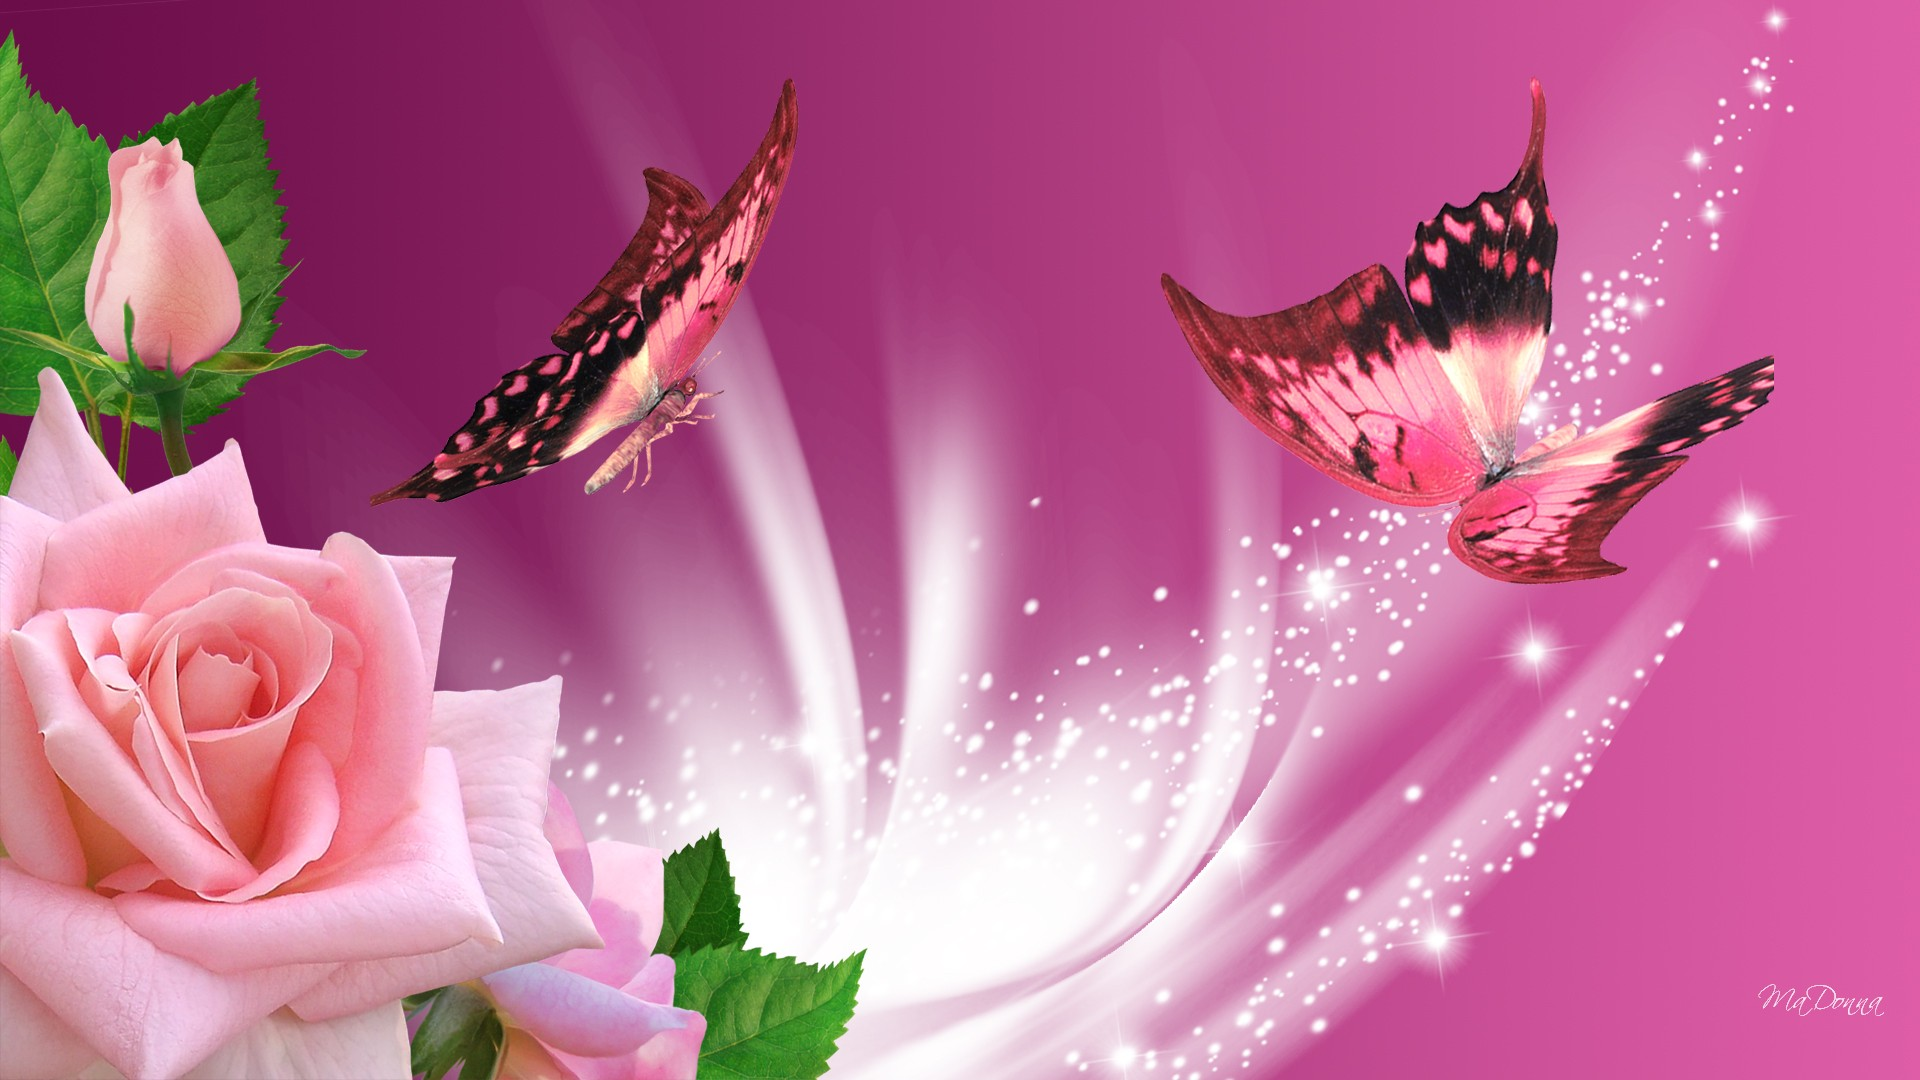 Pink Butterflies Wallpaper wallpaper Pink Butterflies Wallpaper hd 1920x1080